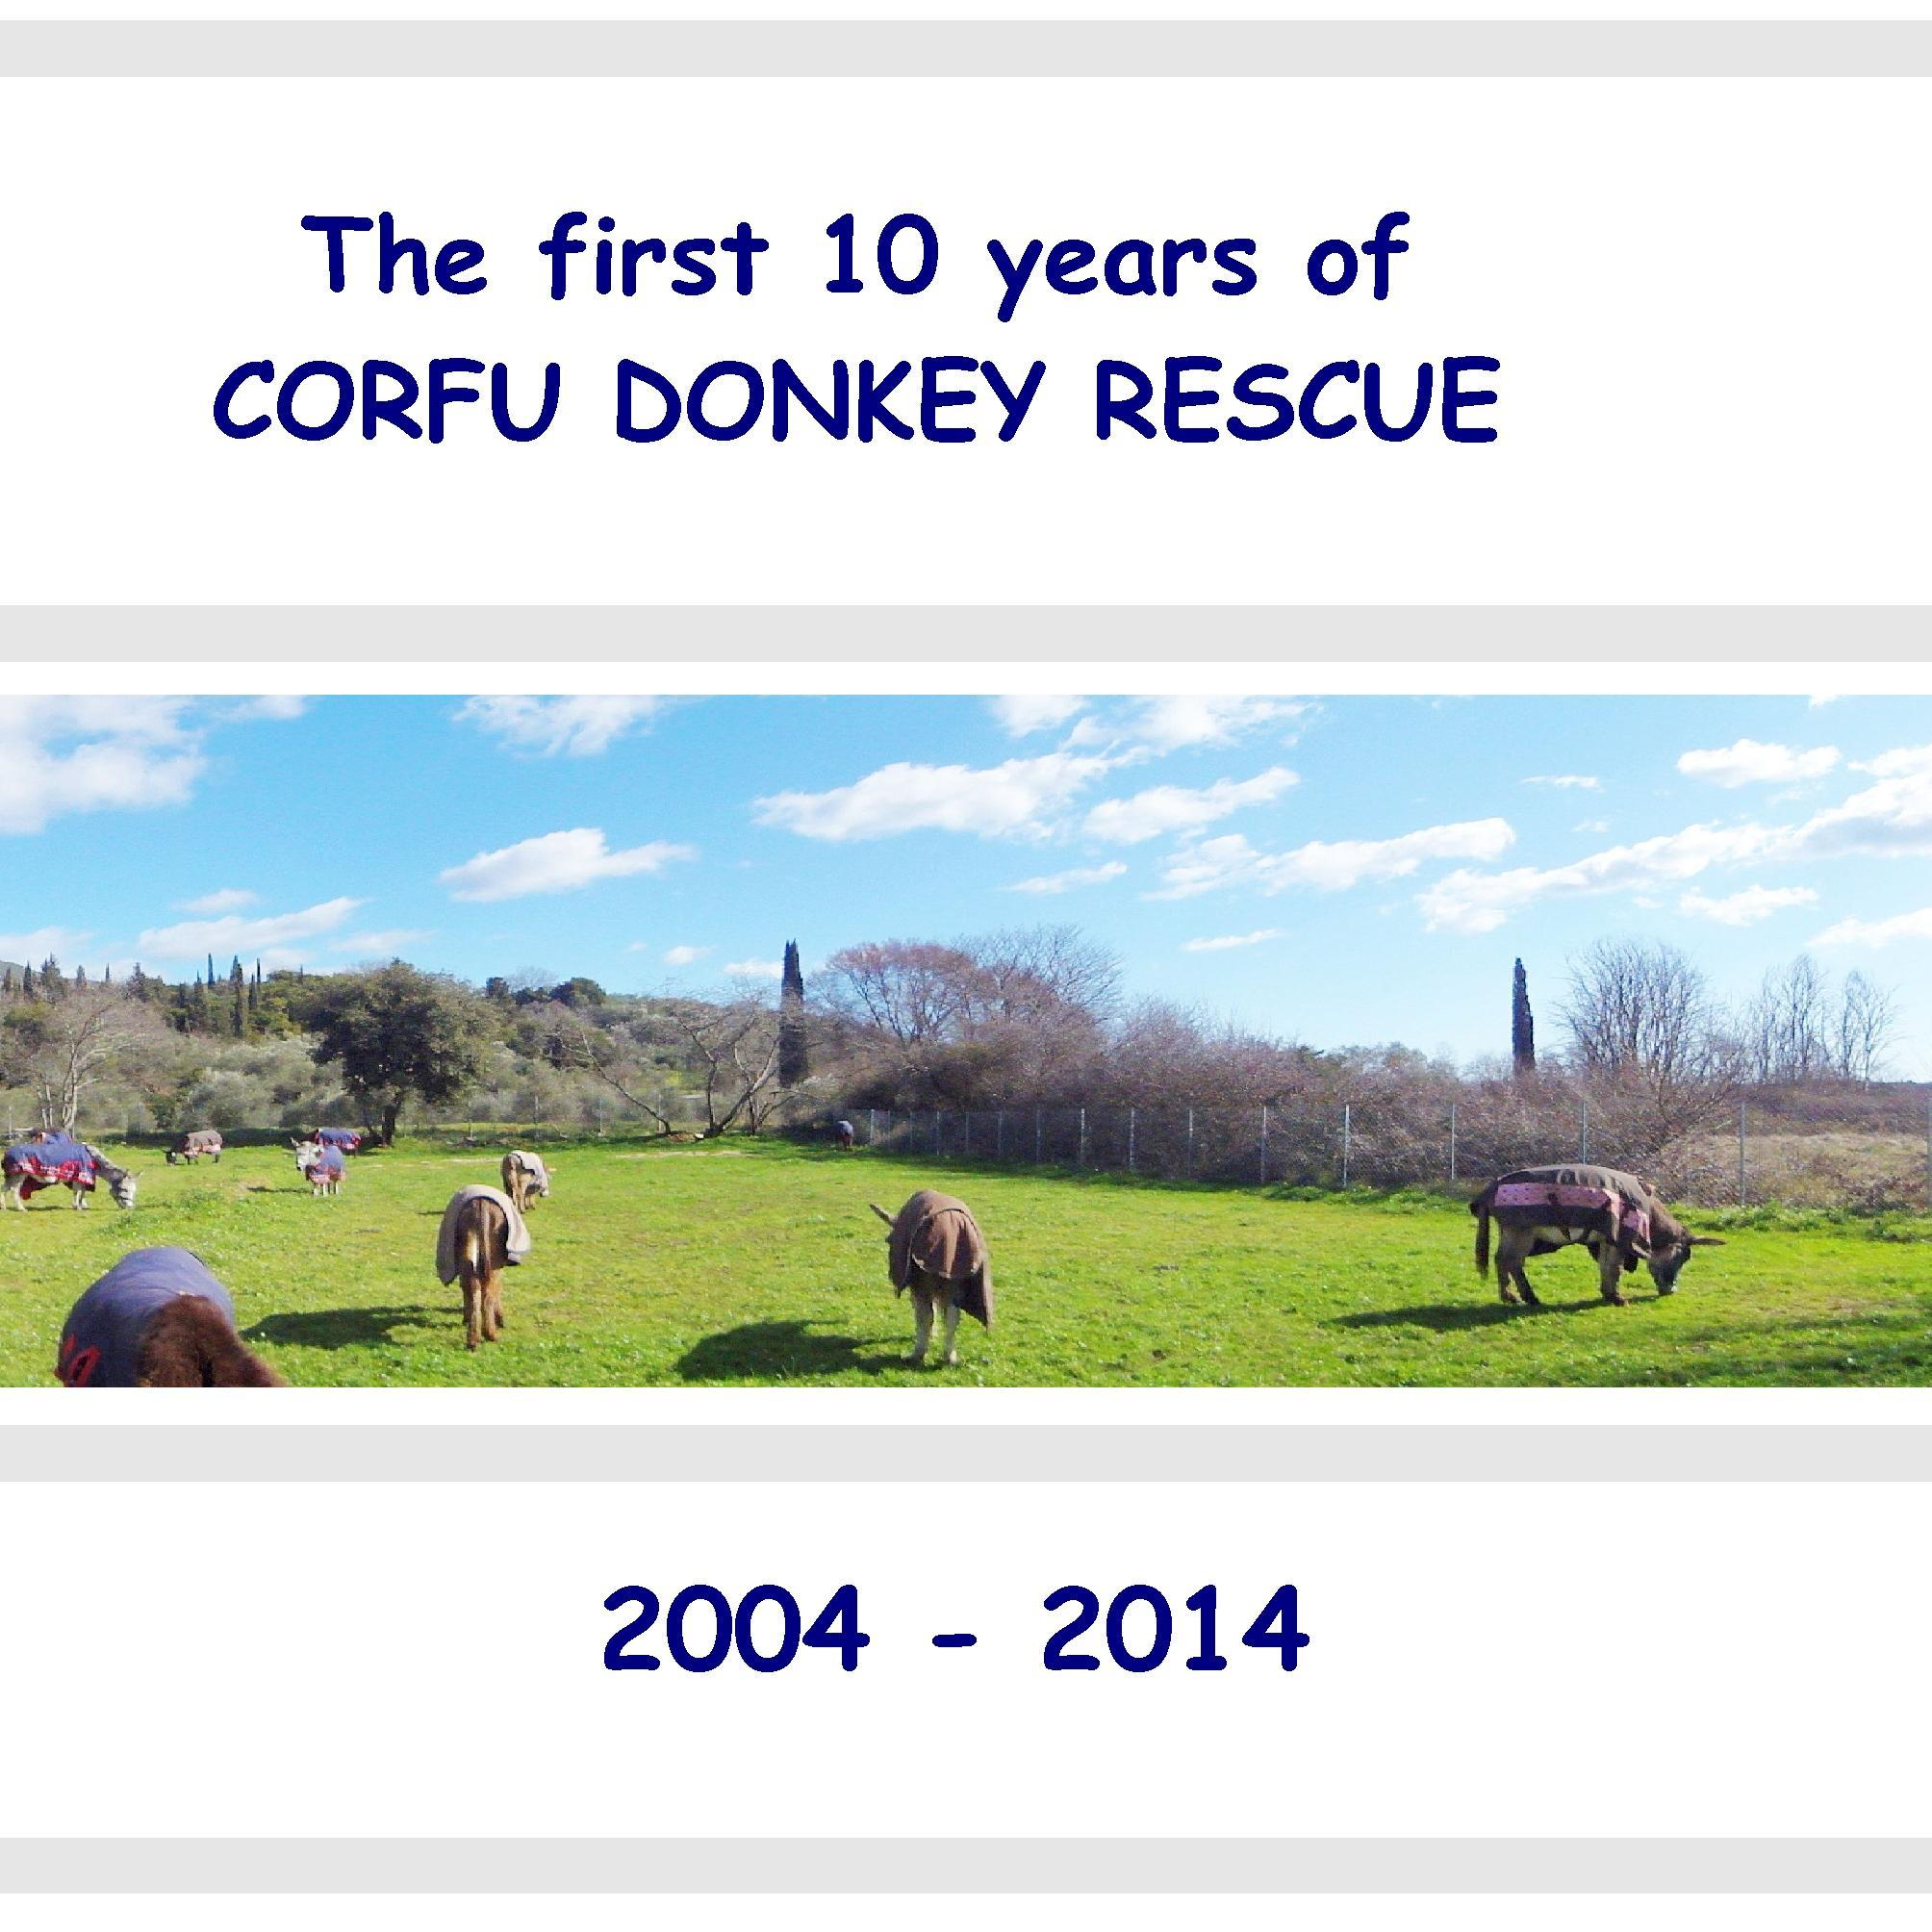 The first 10 years of Corfu Donkey Rescue